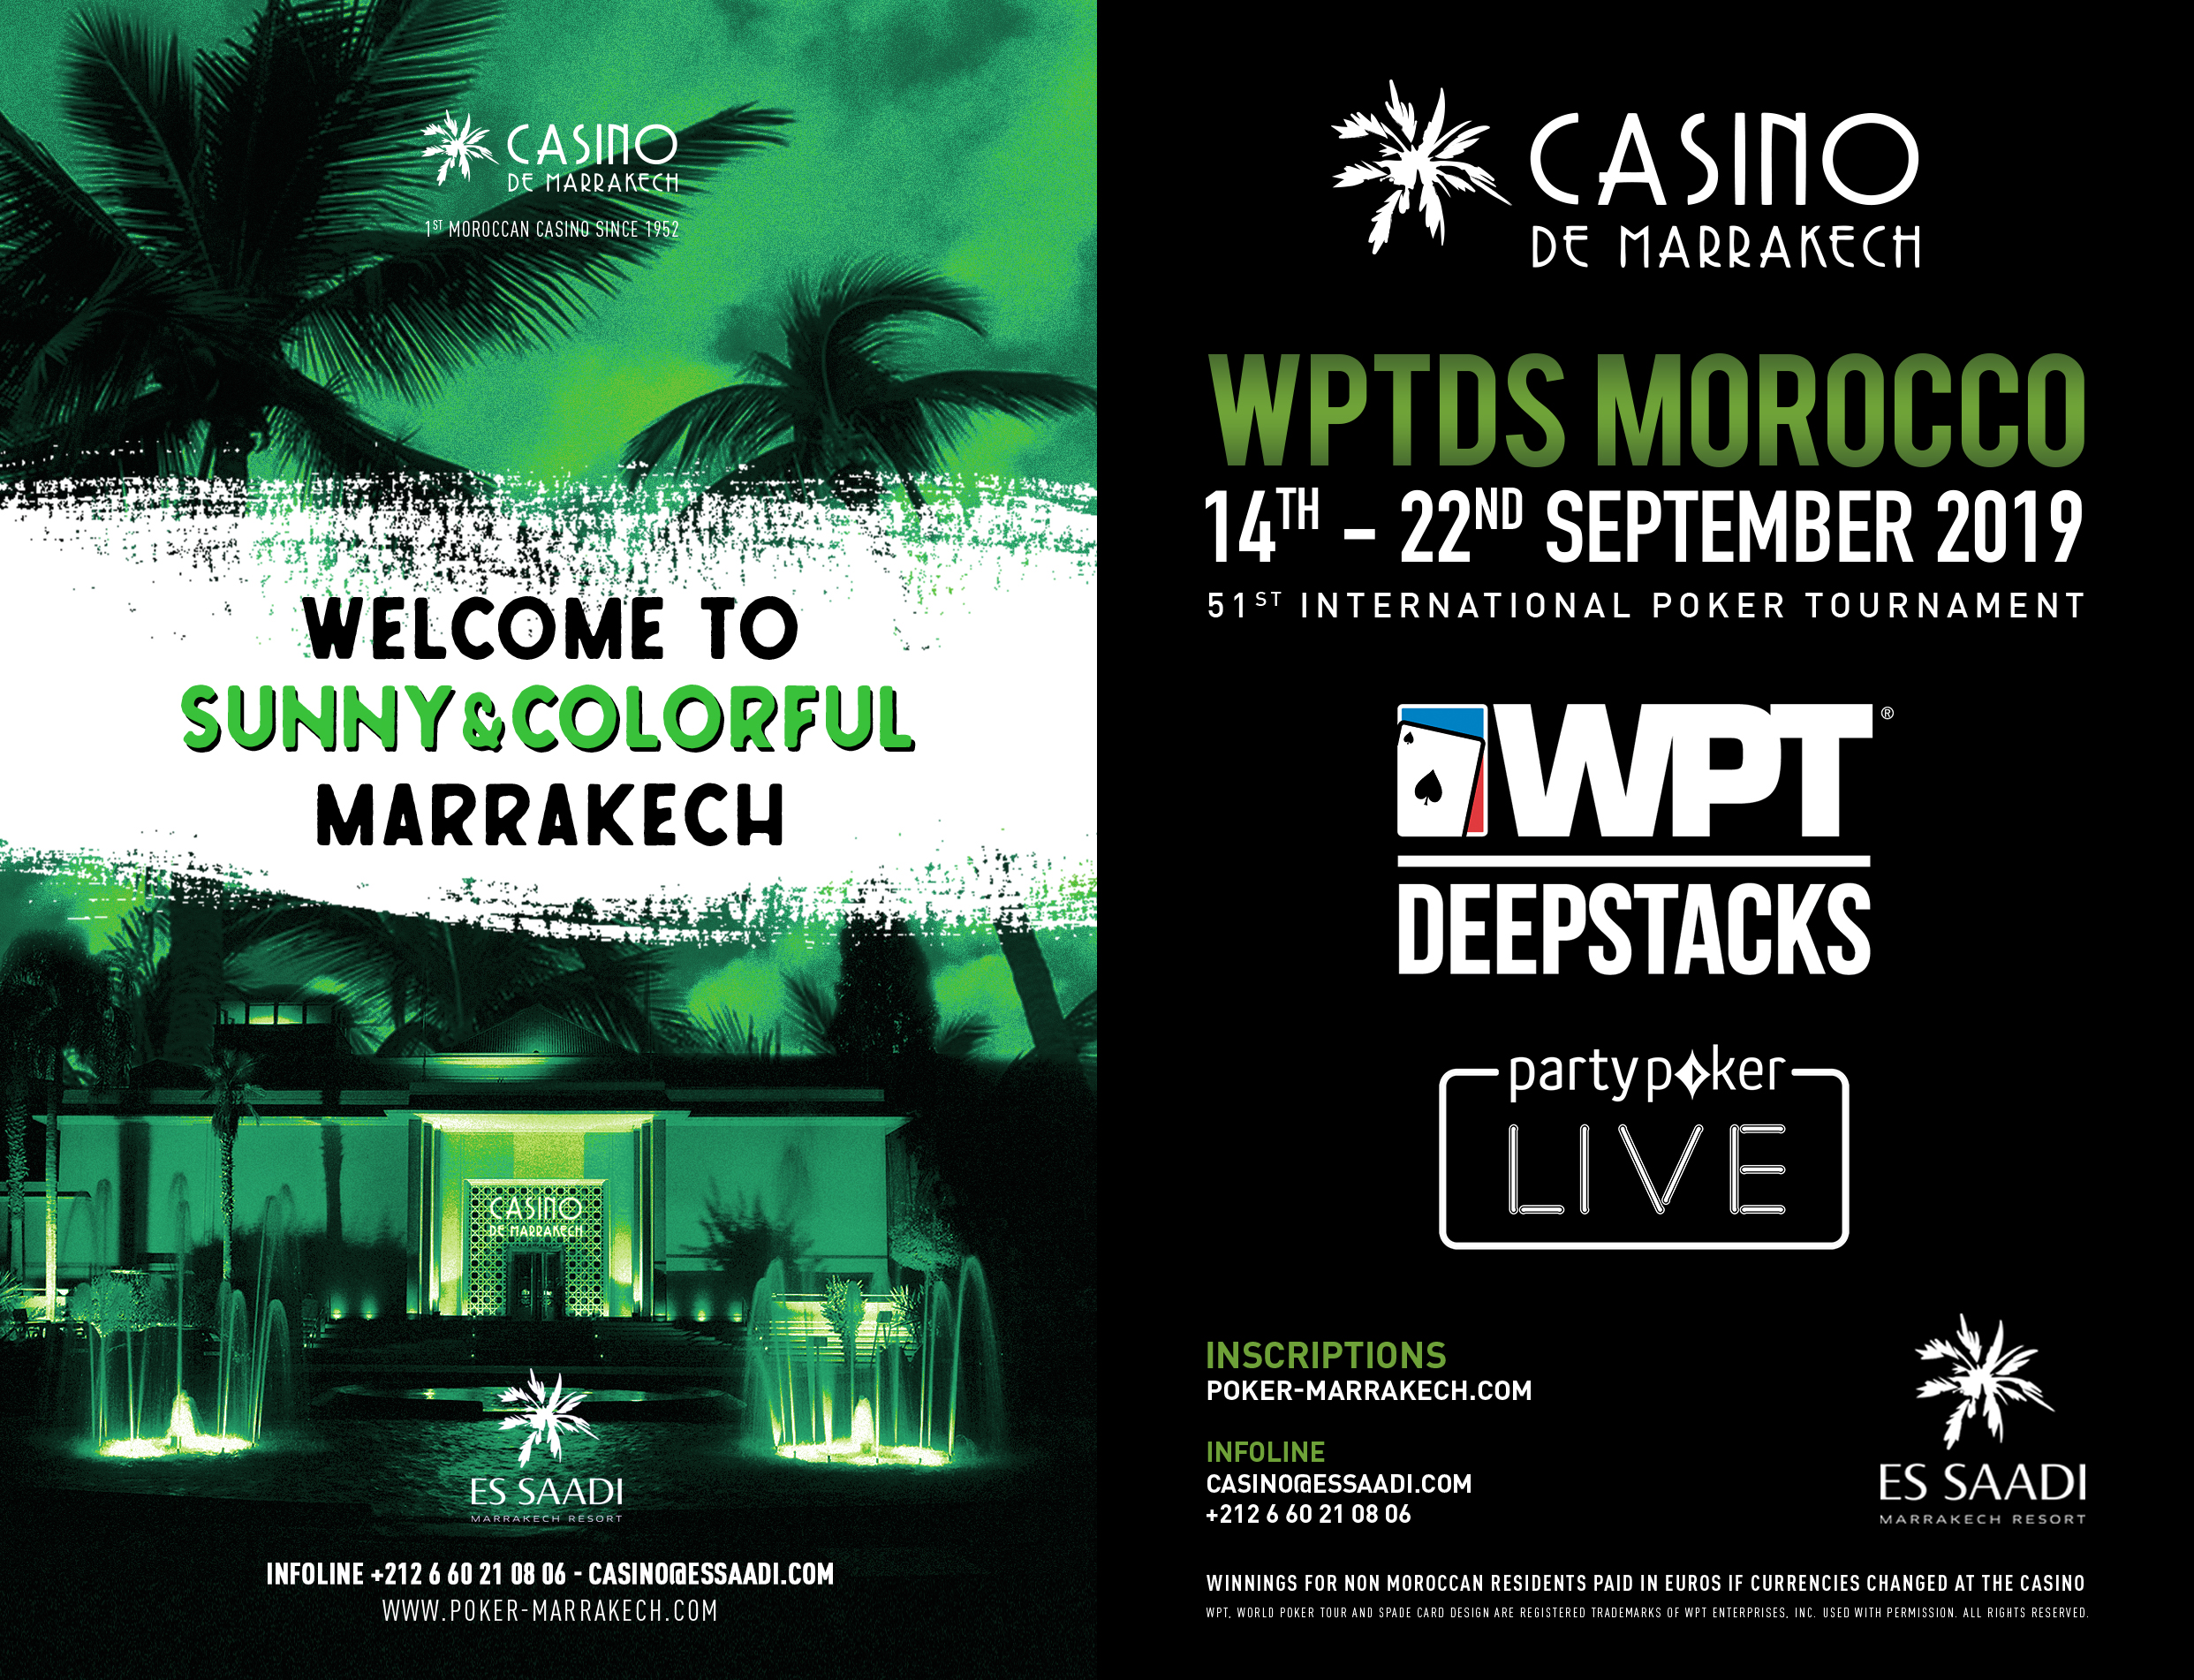 WPT DeepStacks Marrakech 2019